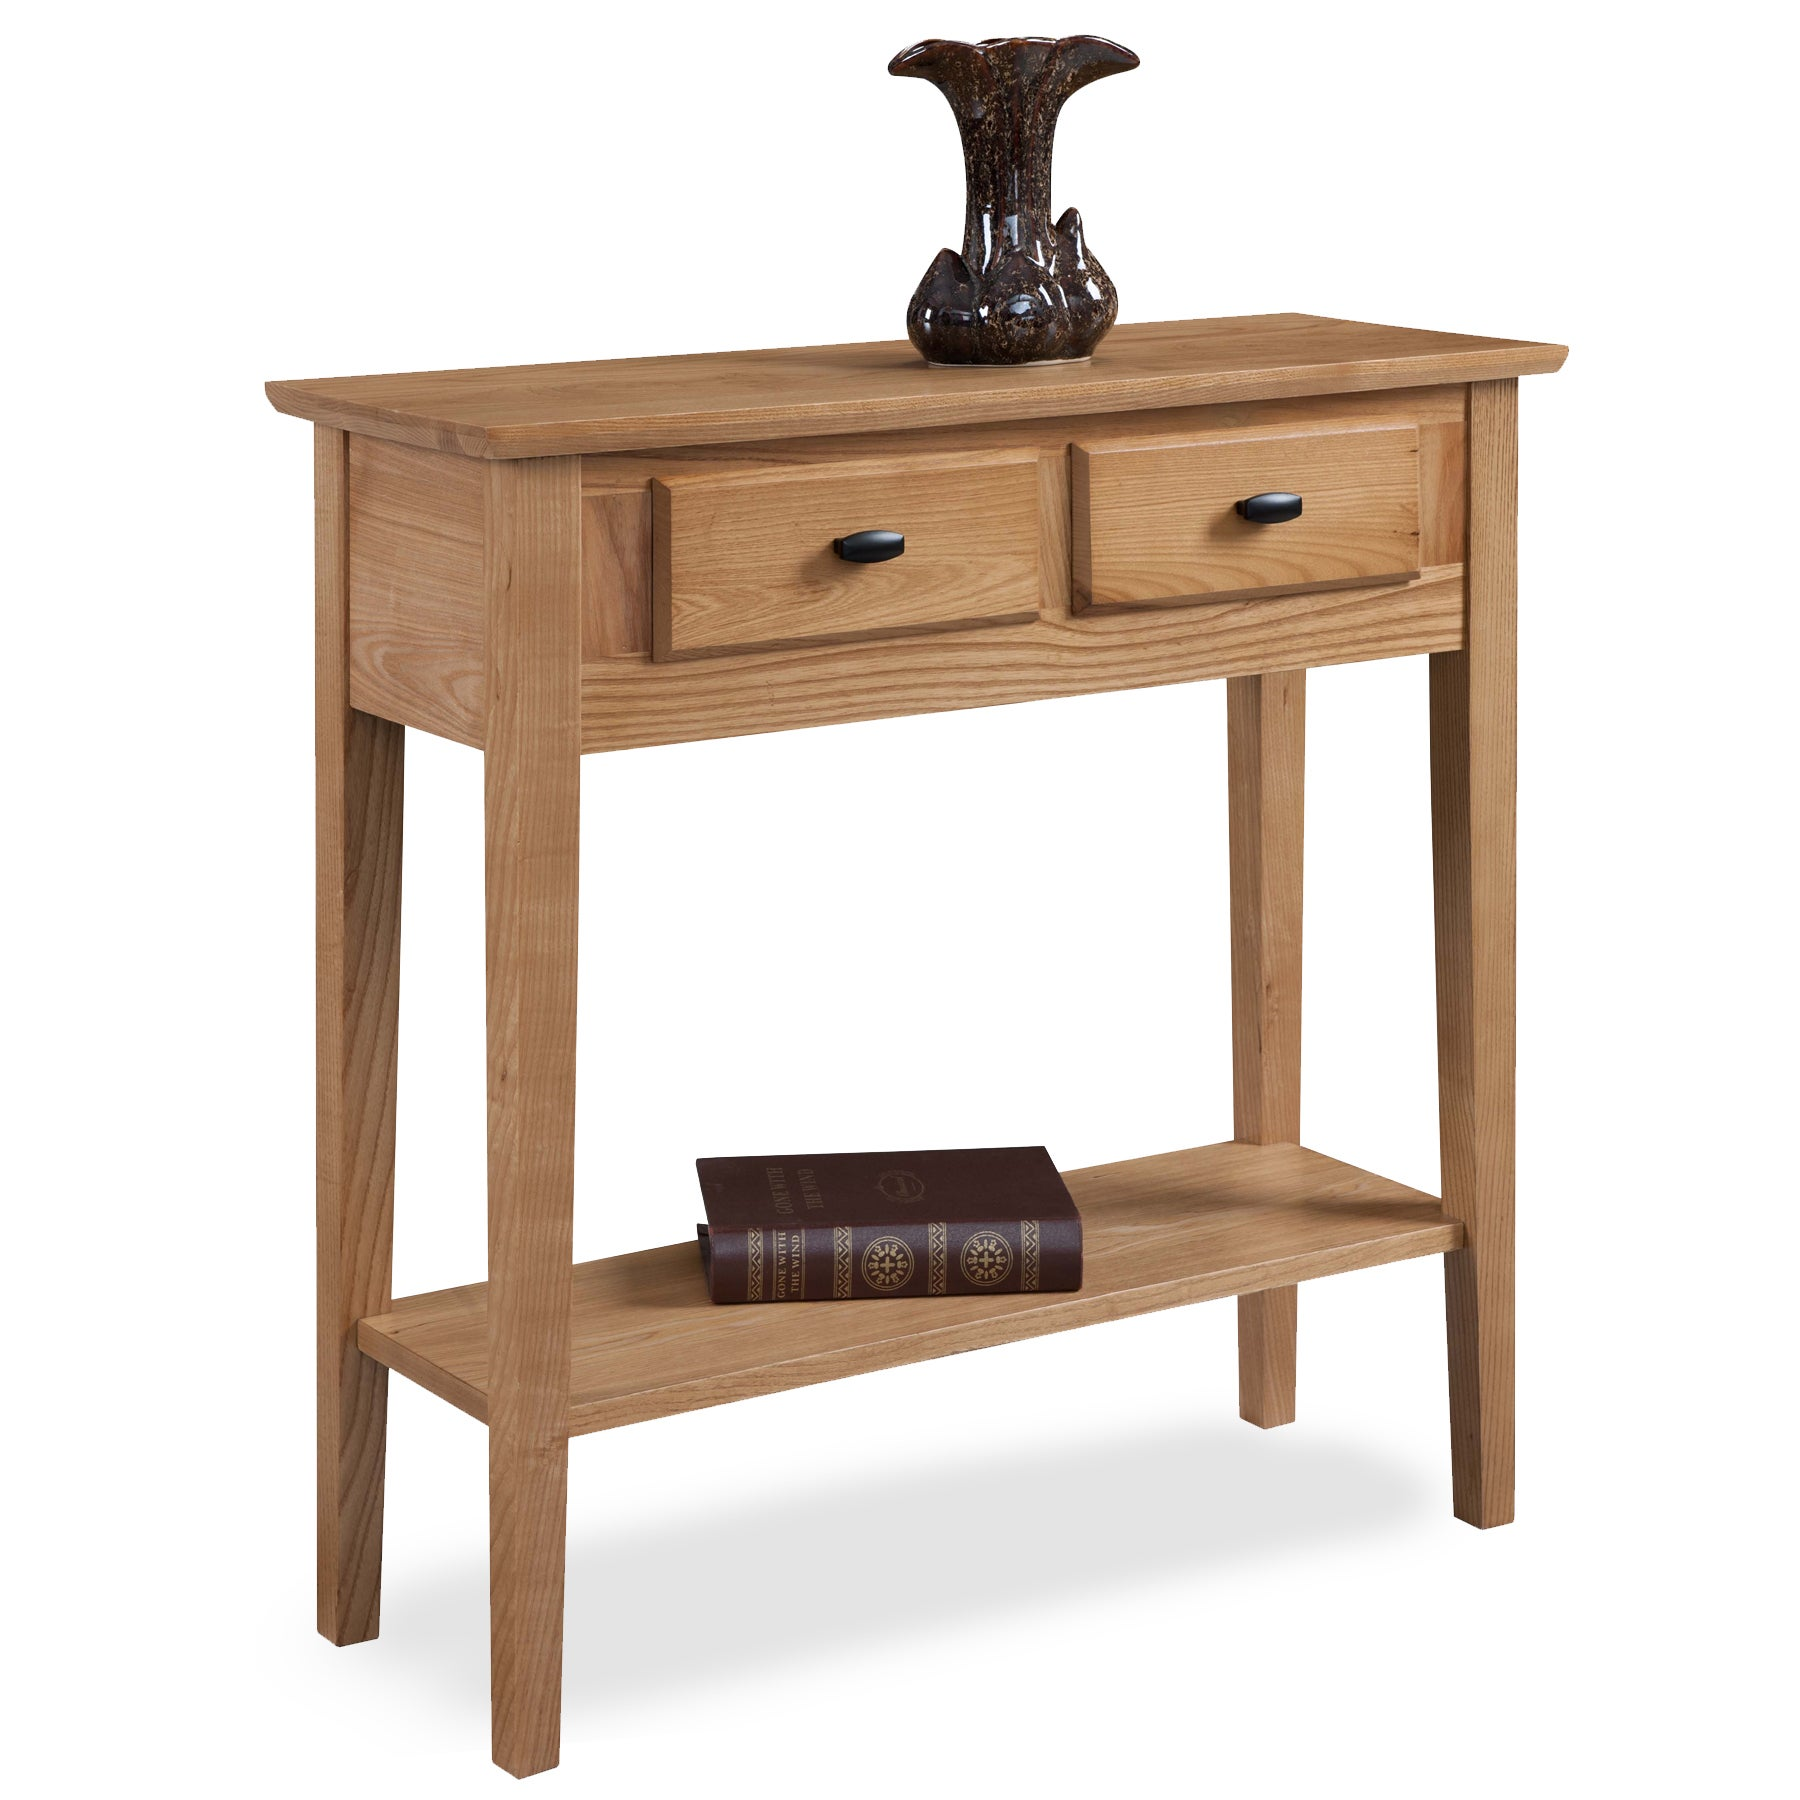 Elegant KD Furnishings Solid Oak Hall Console/ Sofa Table   Free Shipping Today    Overstock   16964596